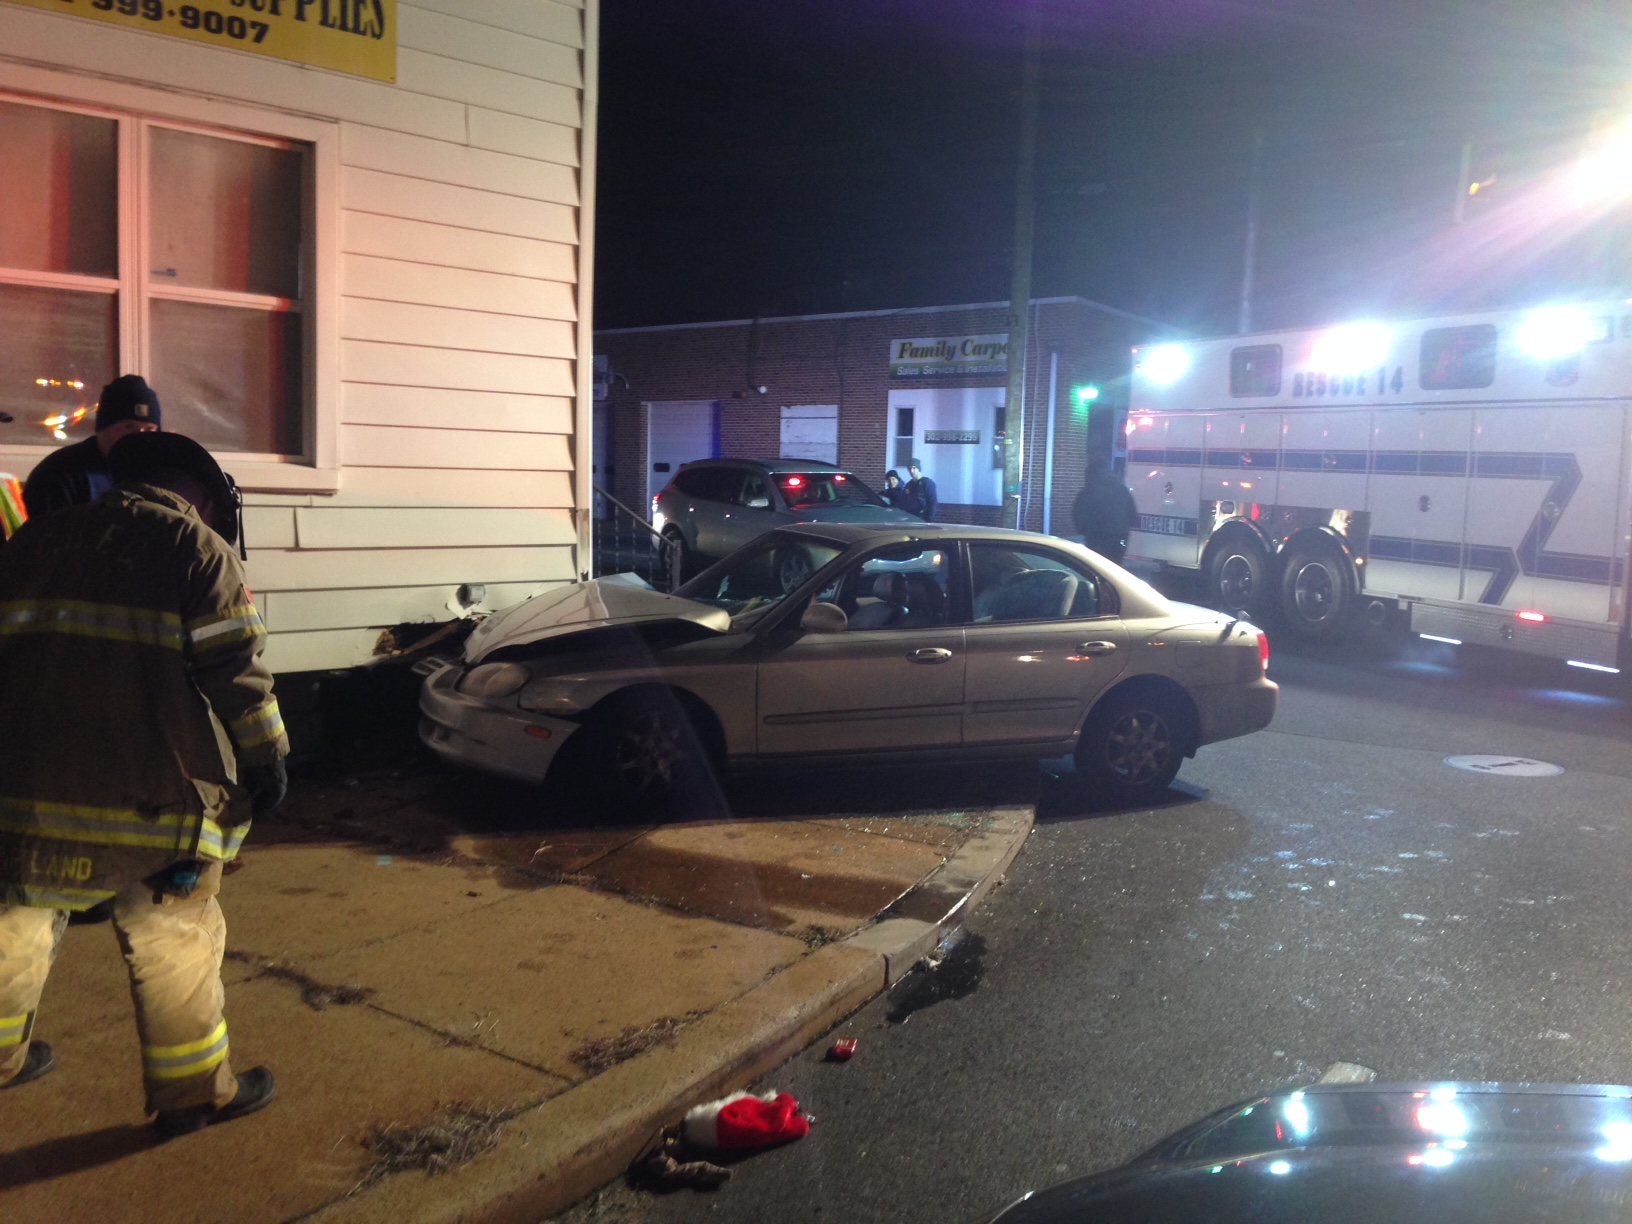 Crash scene (Photo: Delaware Free News)